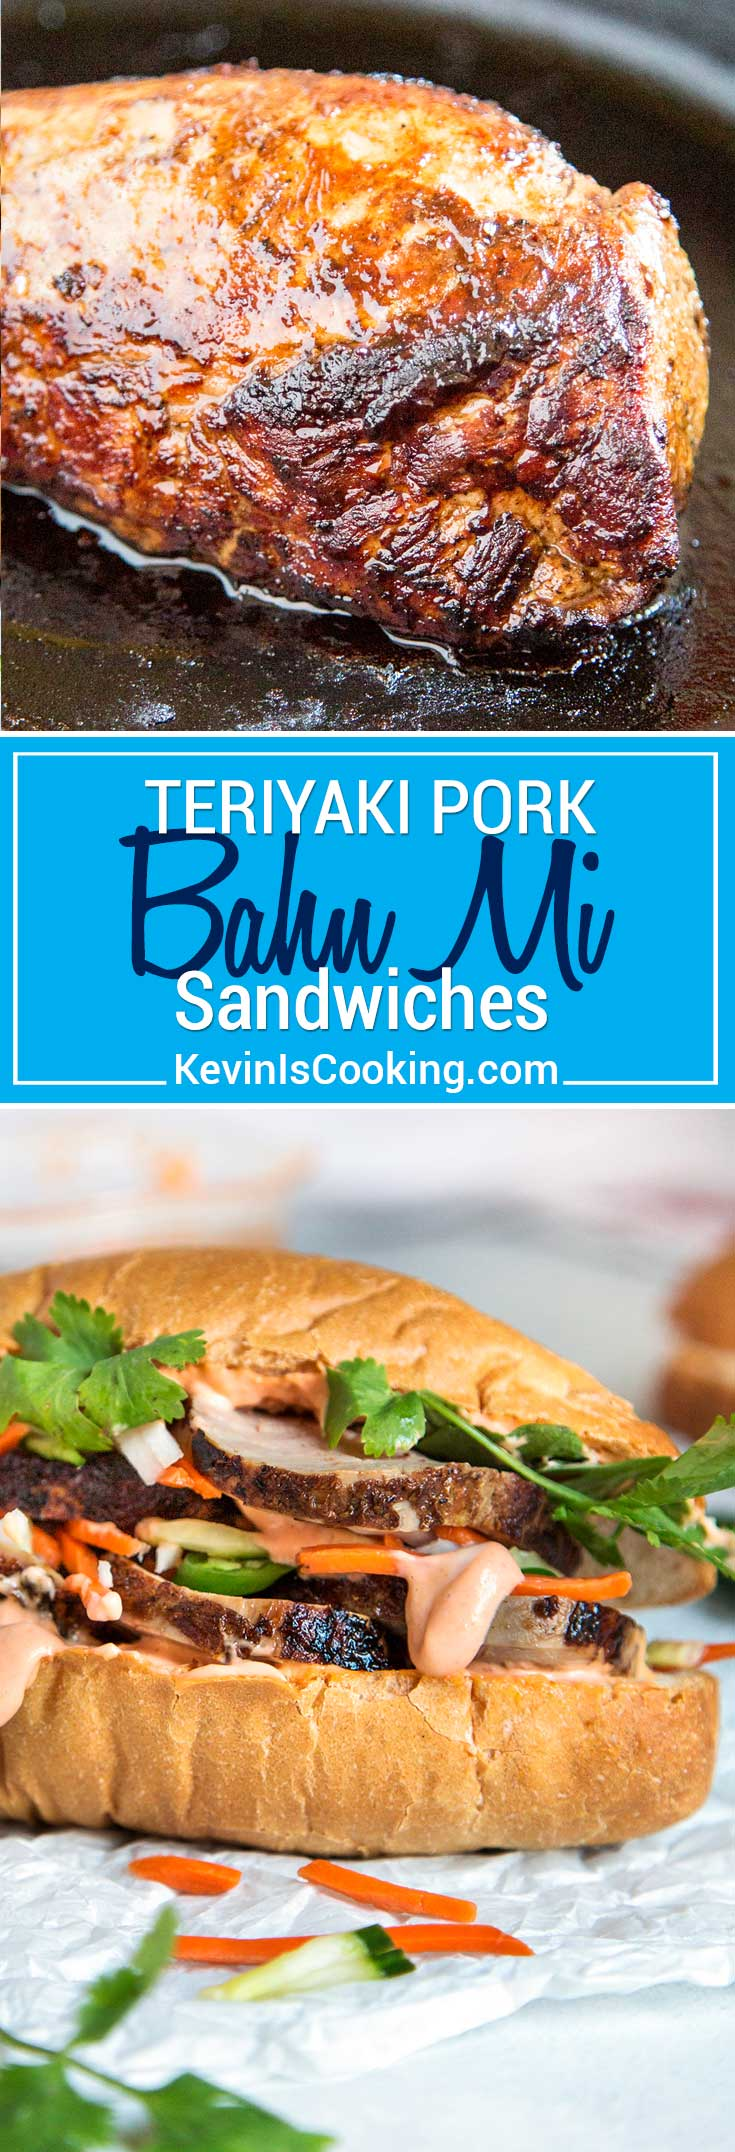 Teriyaki Pork Bahn Mi Sandwich - Kevin Is Cooking